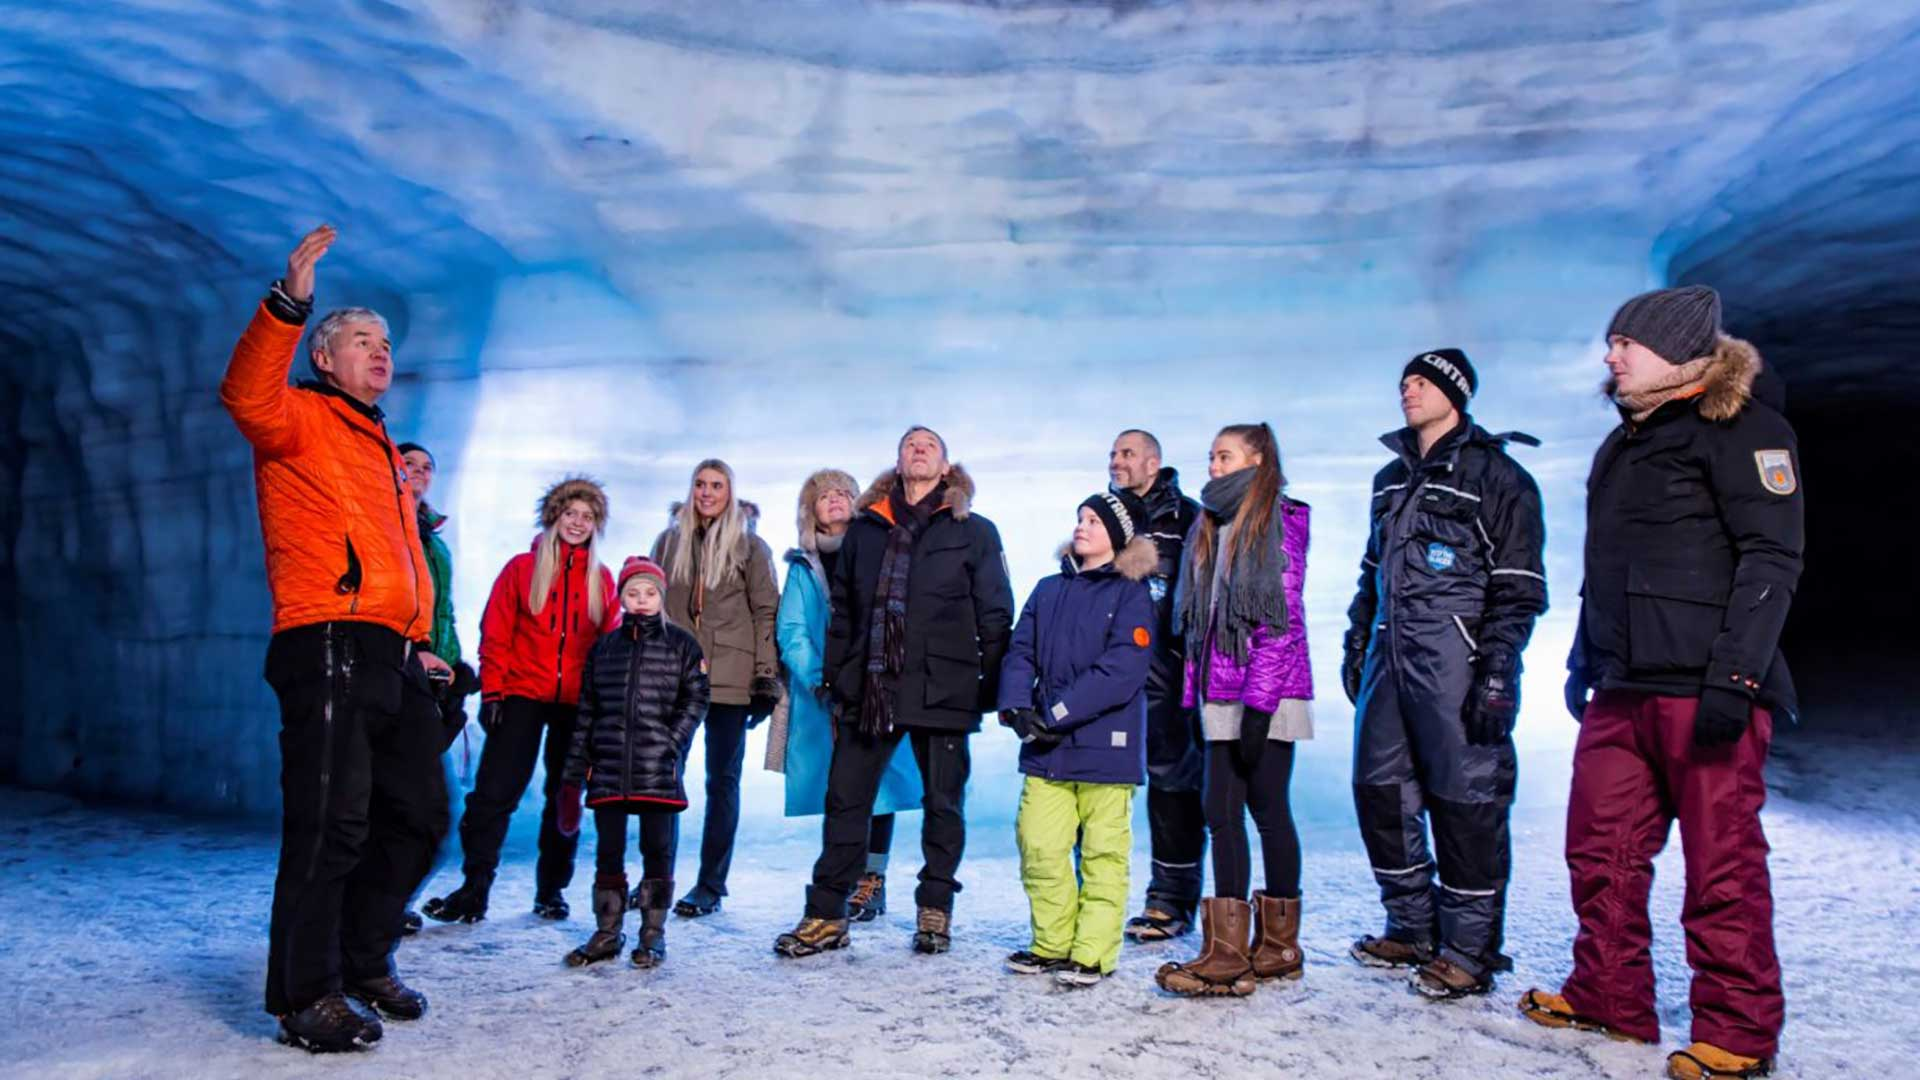 A family beng guided around in the Ice Caves.